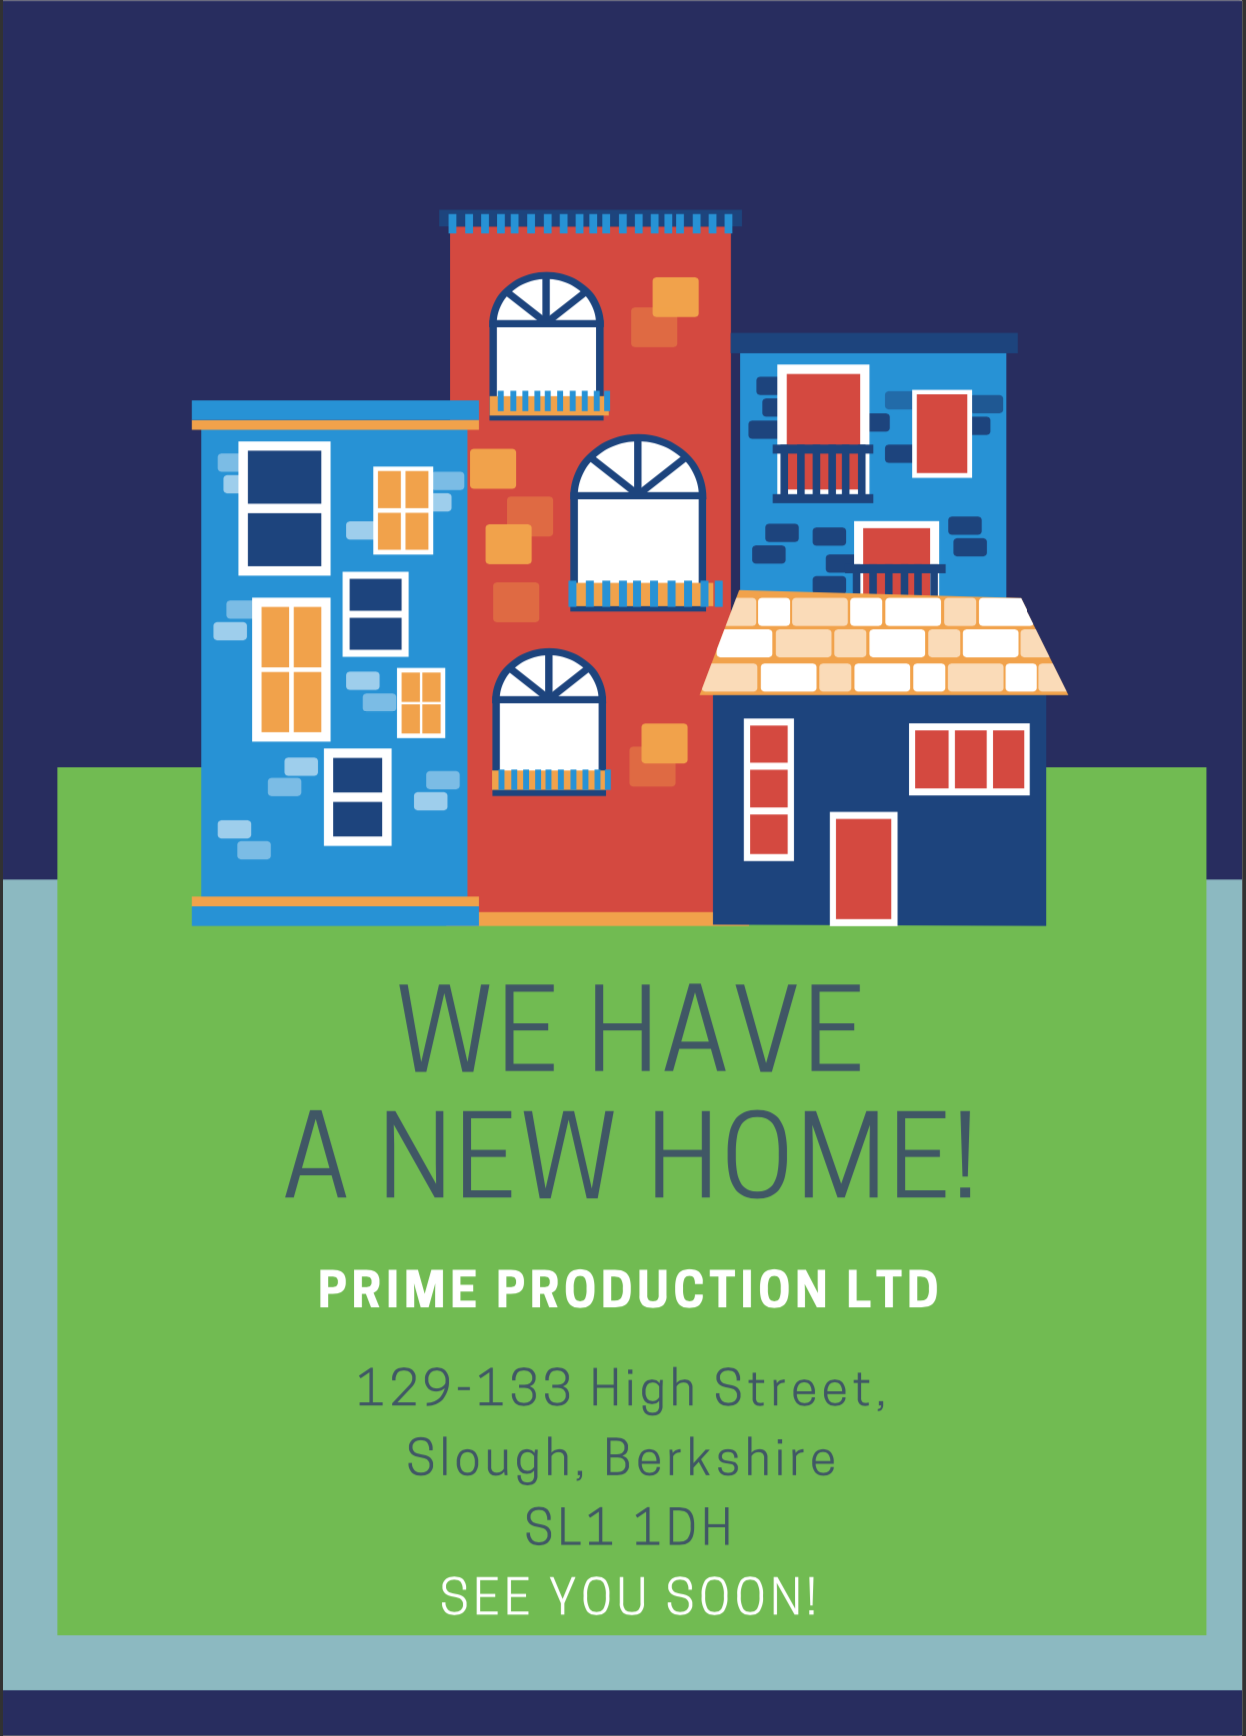 Prime Production Ltd - WE HAVE MOVED